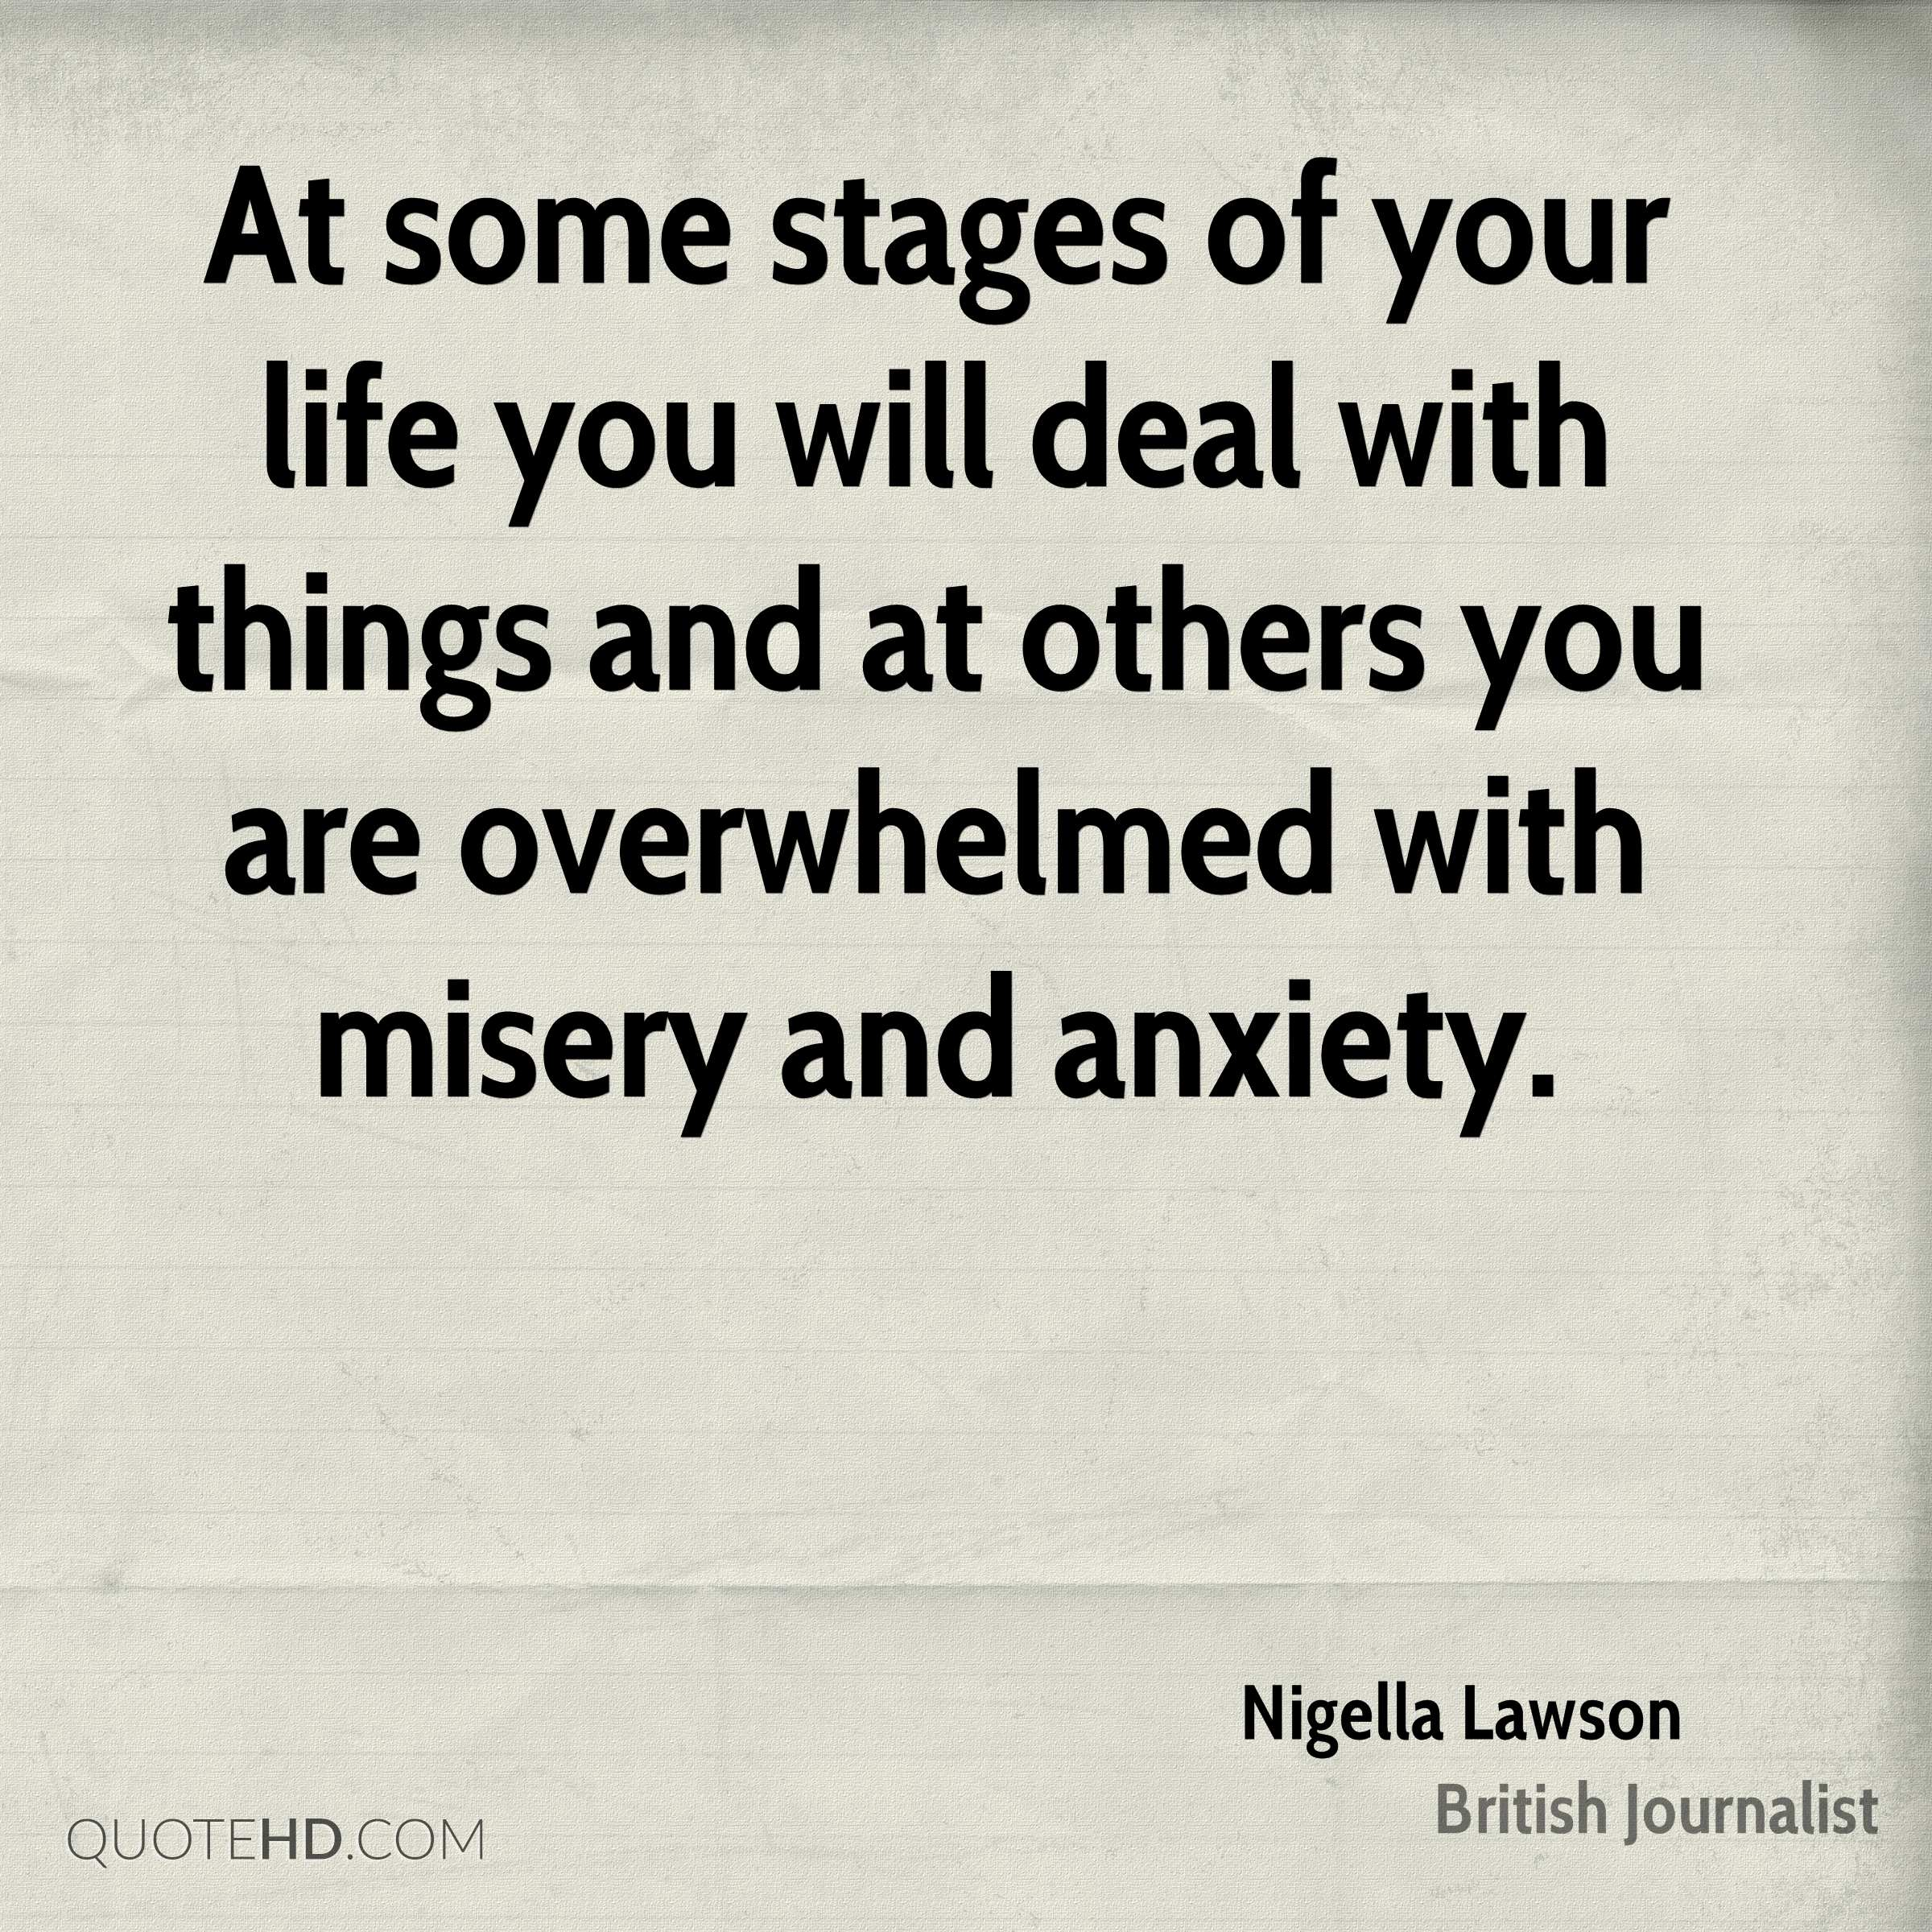 At some stages of your life you will deal with things and at others you are overwhelmed with misery and anxiety.